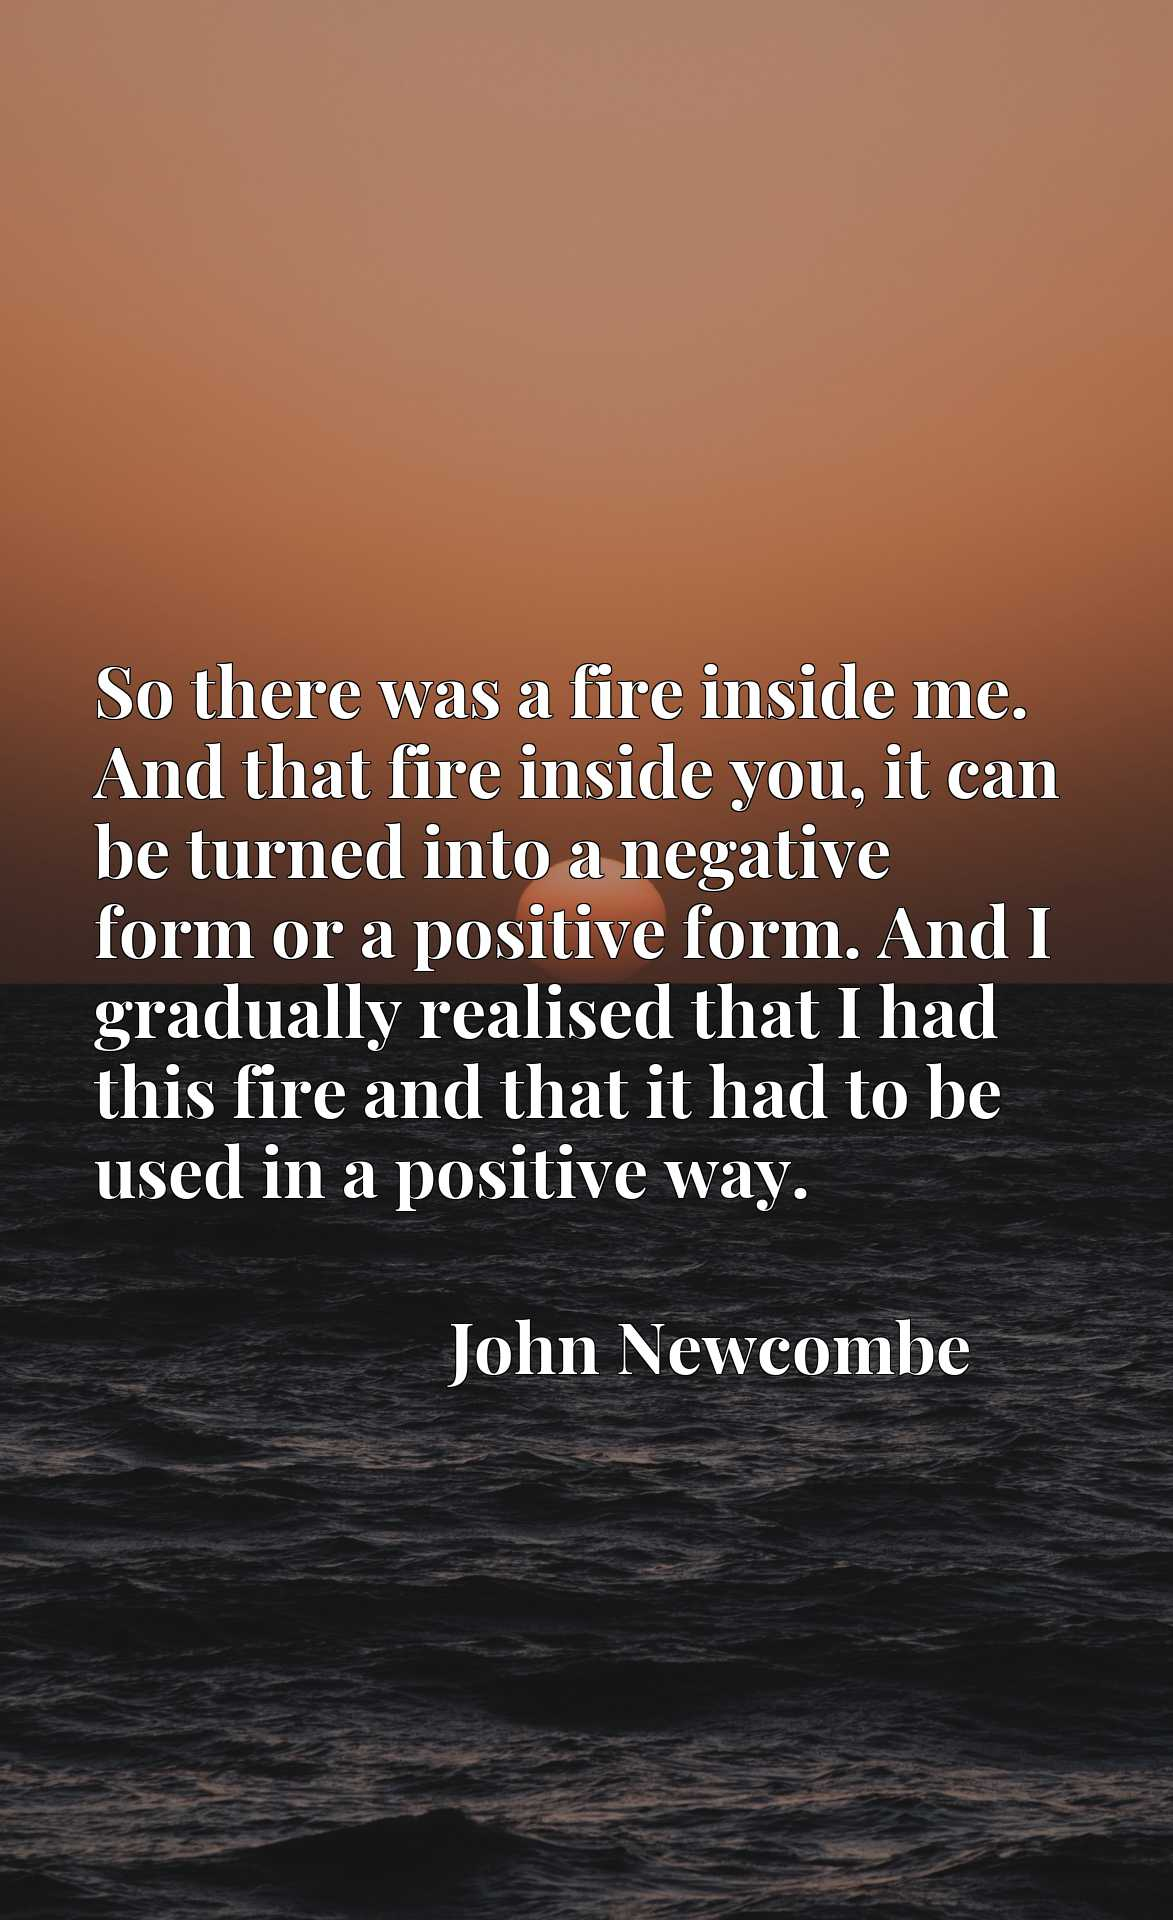 So there was a fire inside me. And that fire inside you, it can be turned into a negative form or a positive form. And I gradually realised that I had this fire and that it had to be used in a positive way.